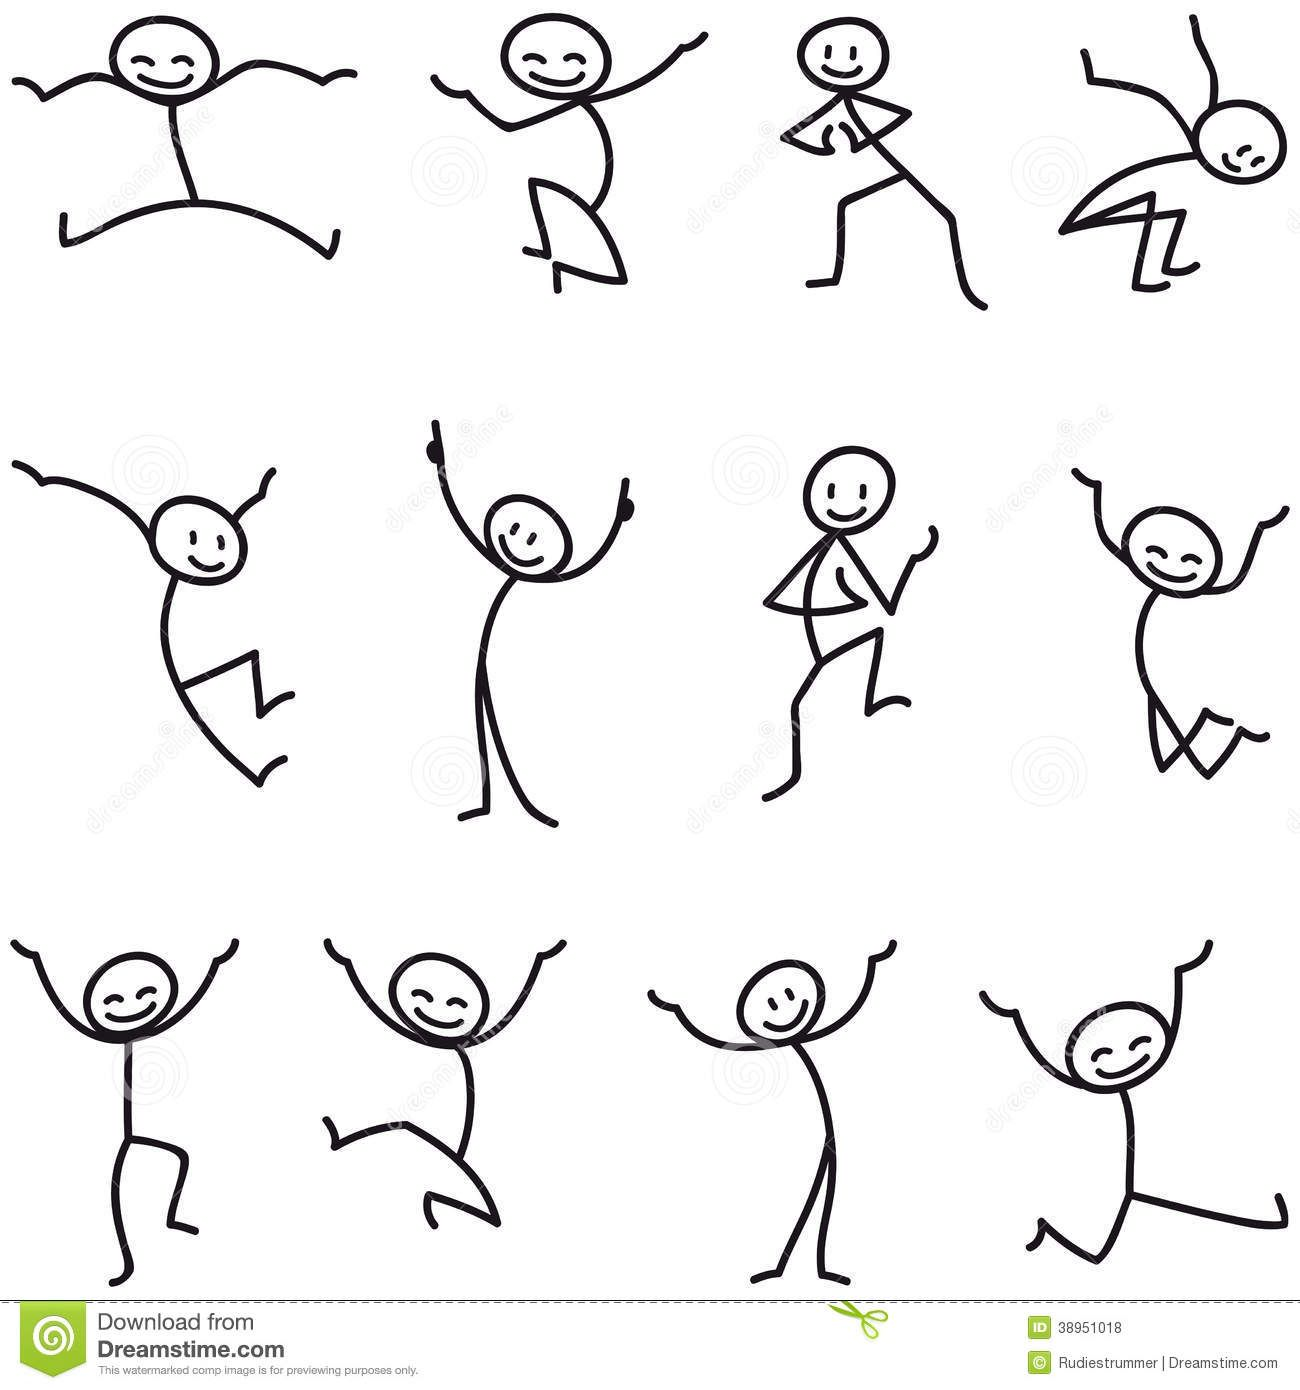 Stick man stick figure happy jumping celebrating download from